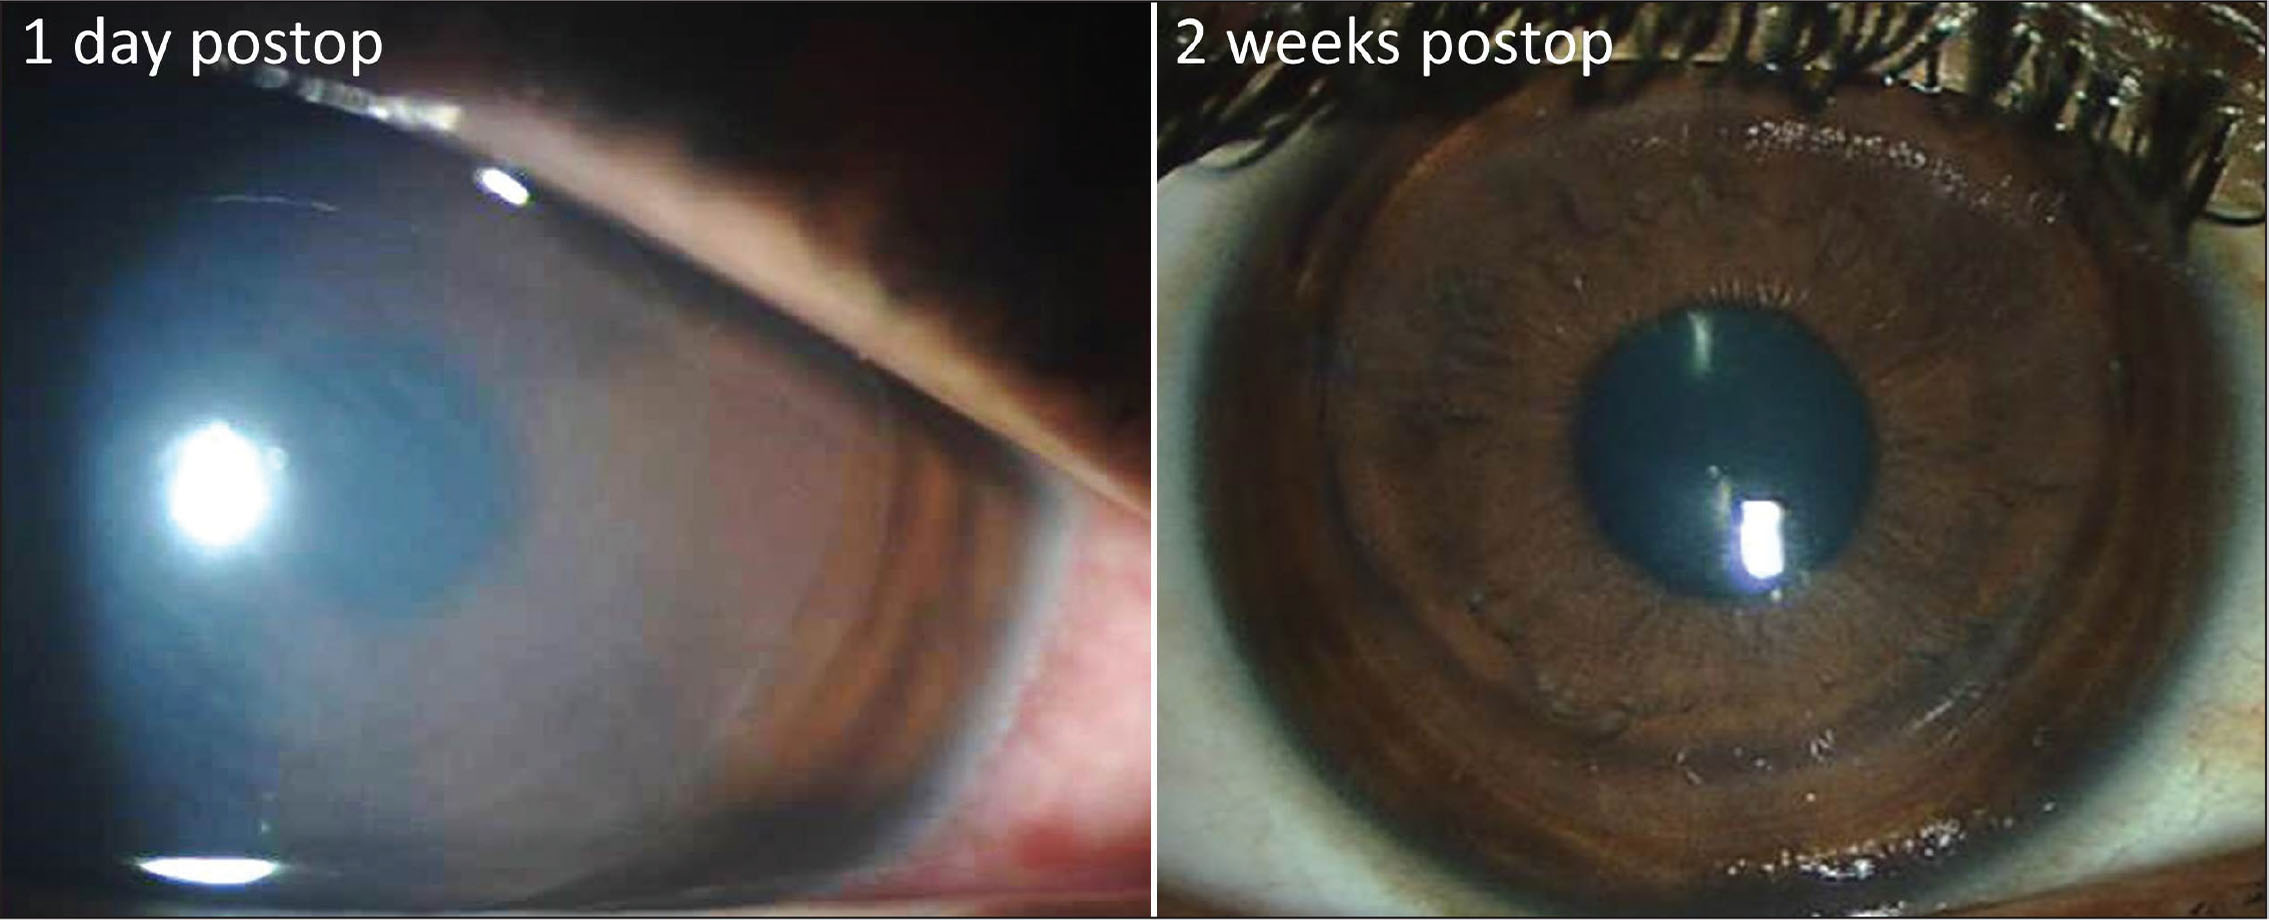 (Left) Slit-lamp photograph 1 day after treatment showing moderate stromal edema and (right) 2 weeks after treatment showing a clear and centered graft with mild residual stromal edema.